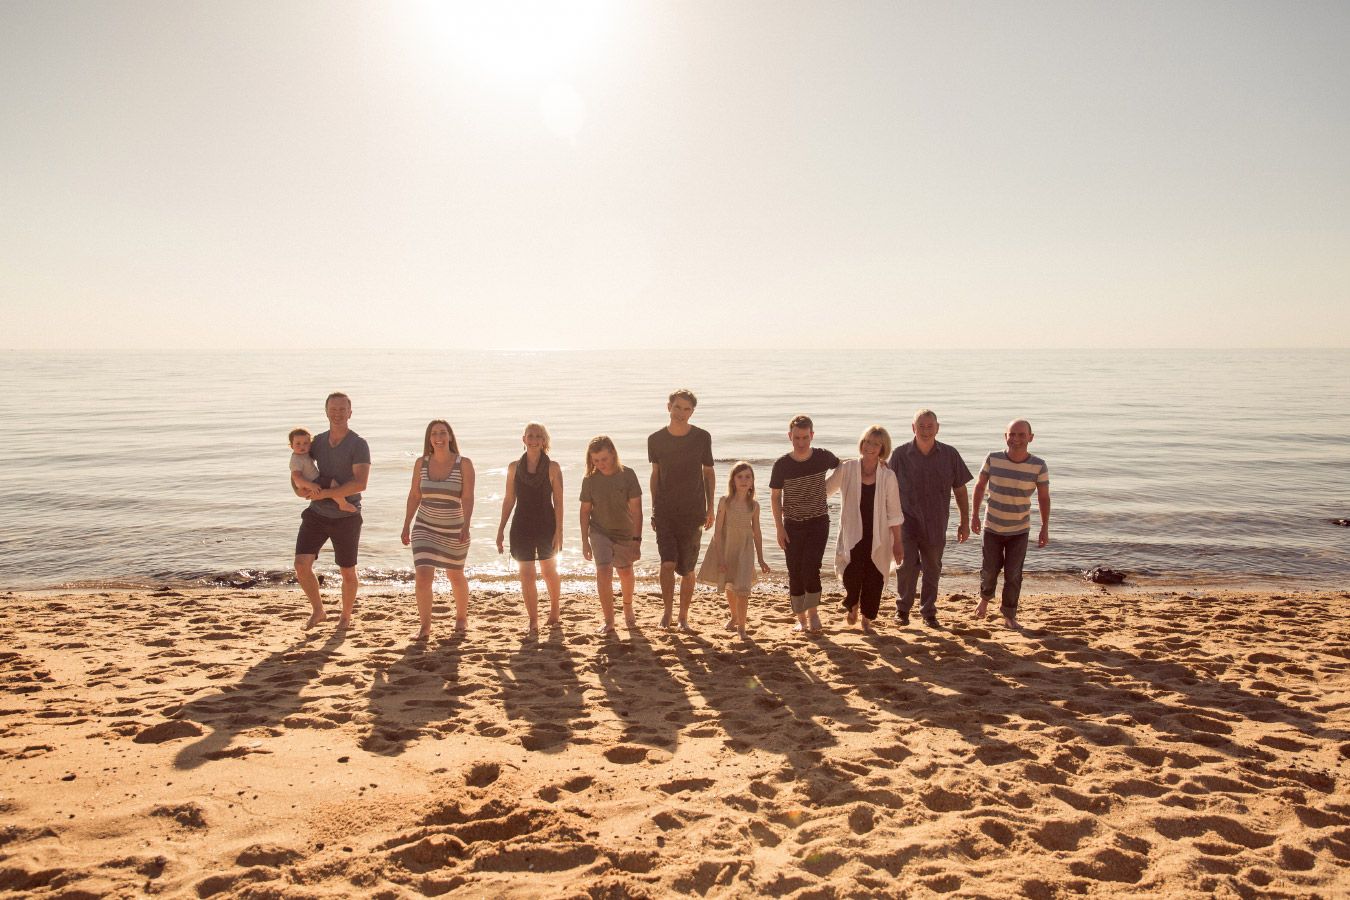 extended-family-photographer-generational-beach-mornington-peninsula